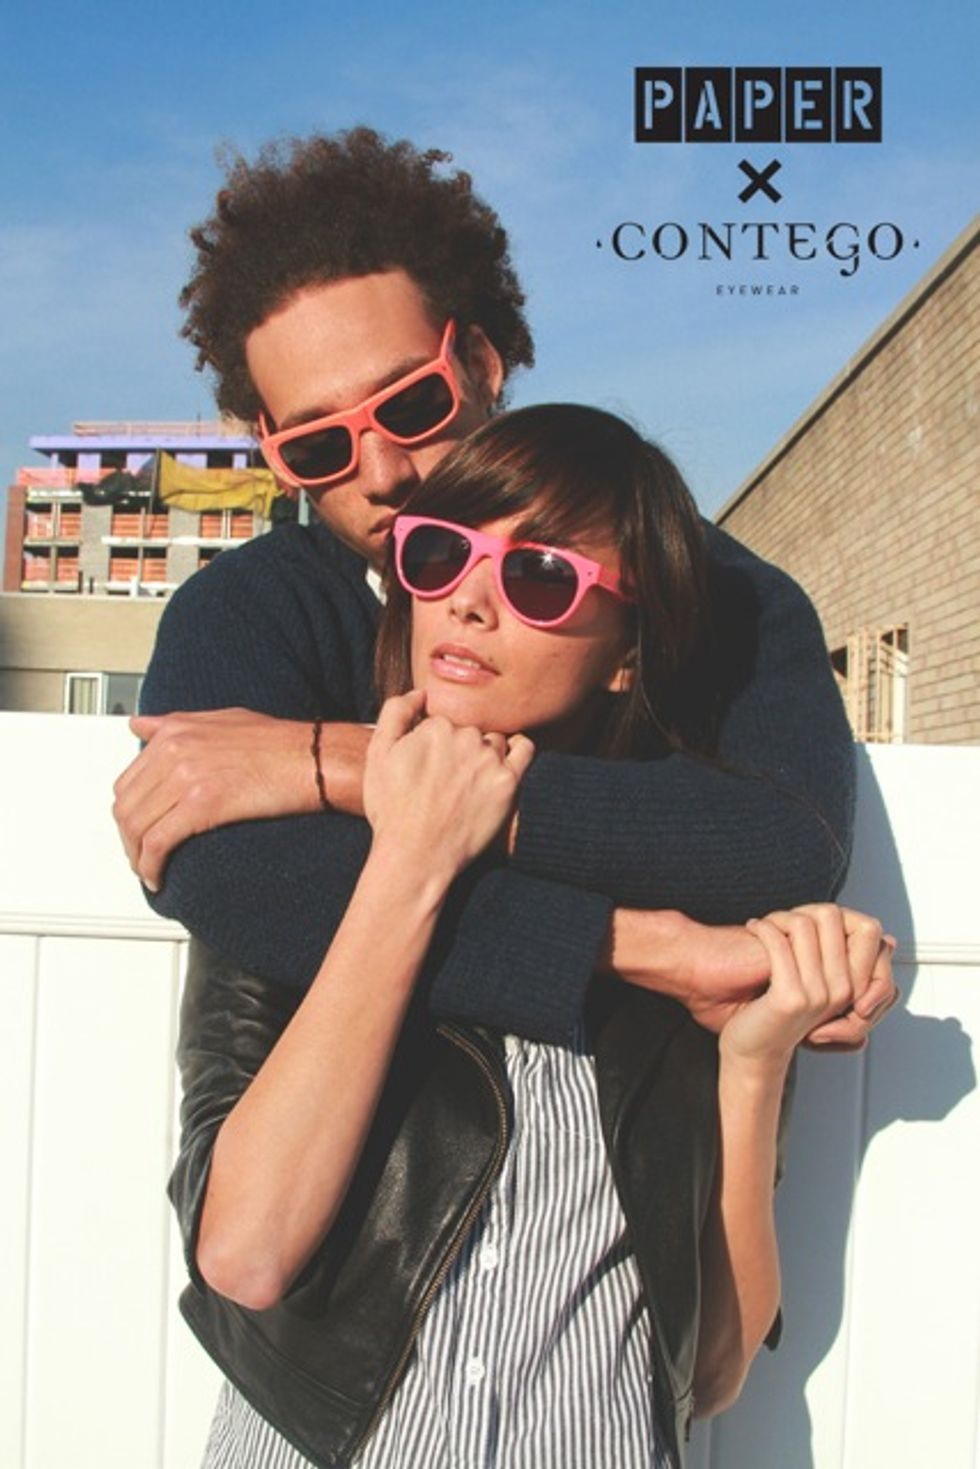 PAPER X Contego Limited Edition Sunglasses: Win a Free Pair!